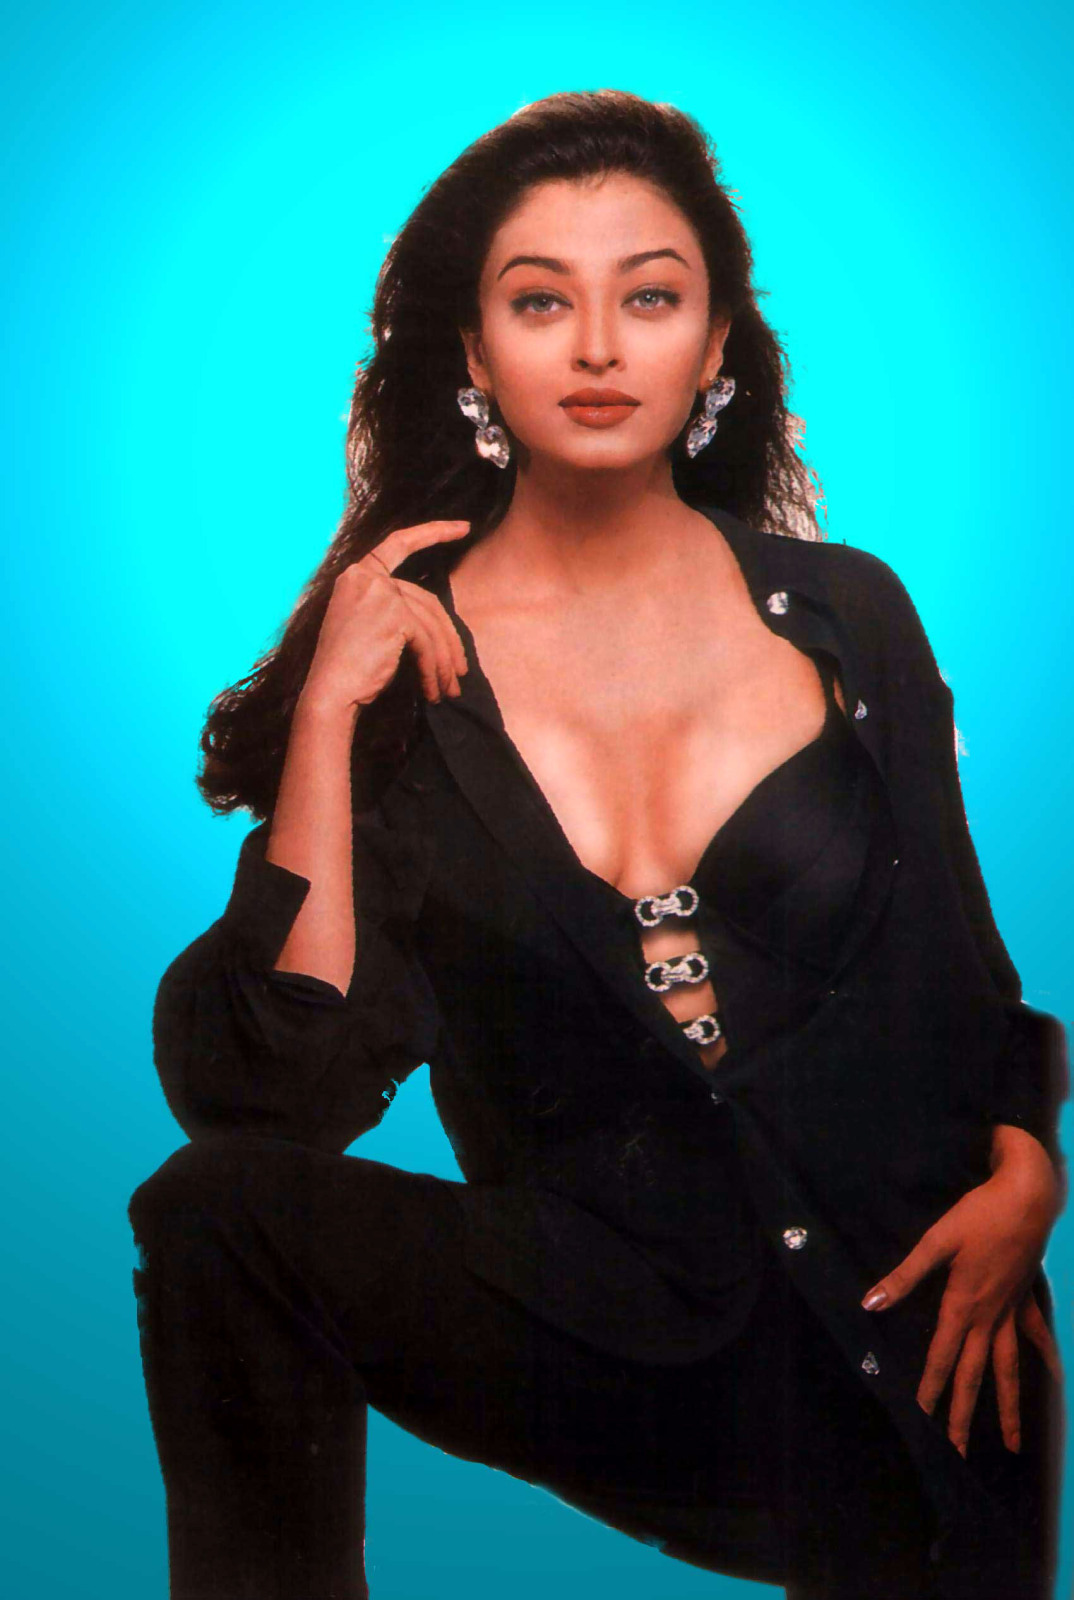 Aishwarya erotic photo rai watch